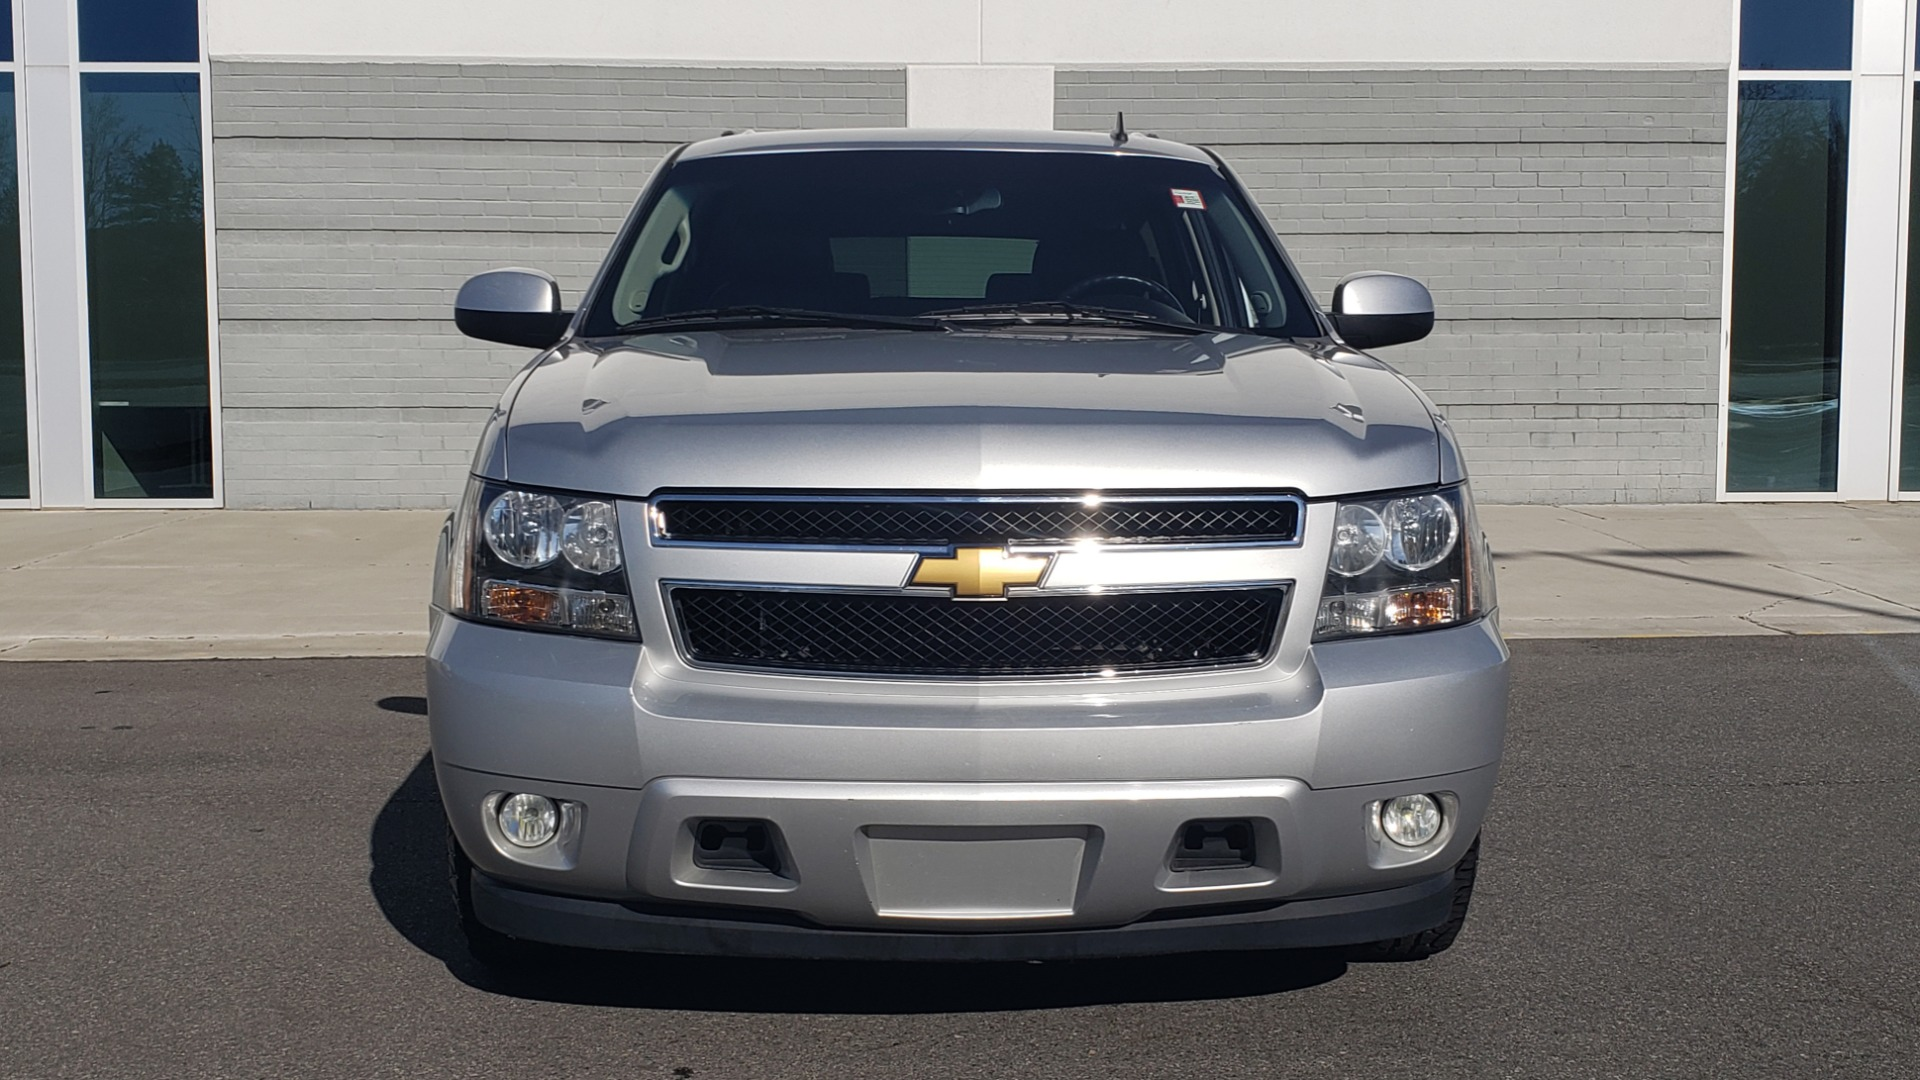 Used 2013 Chevrolet SUBURBAN LT / 2WD / 5.3L V8 / 6-SPD AUTO / LEATHER 3-ROW SEATS for sale Sold at Formula Imports in Charlotte NC 28227 23